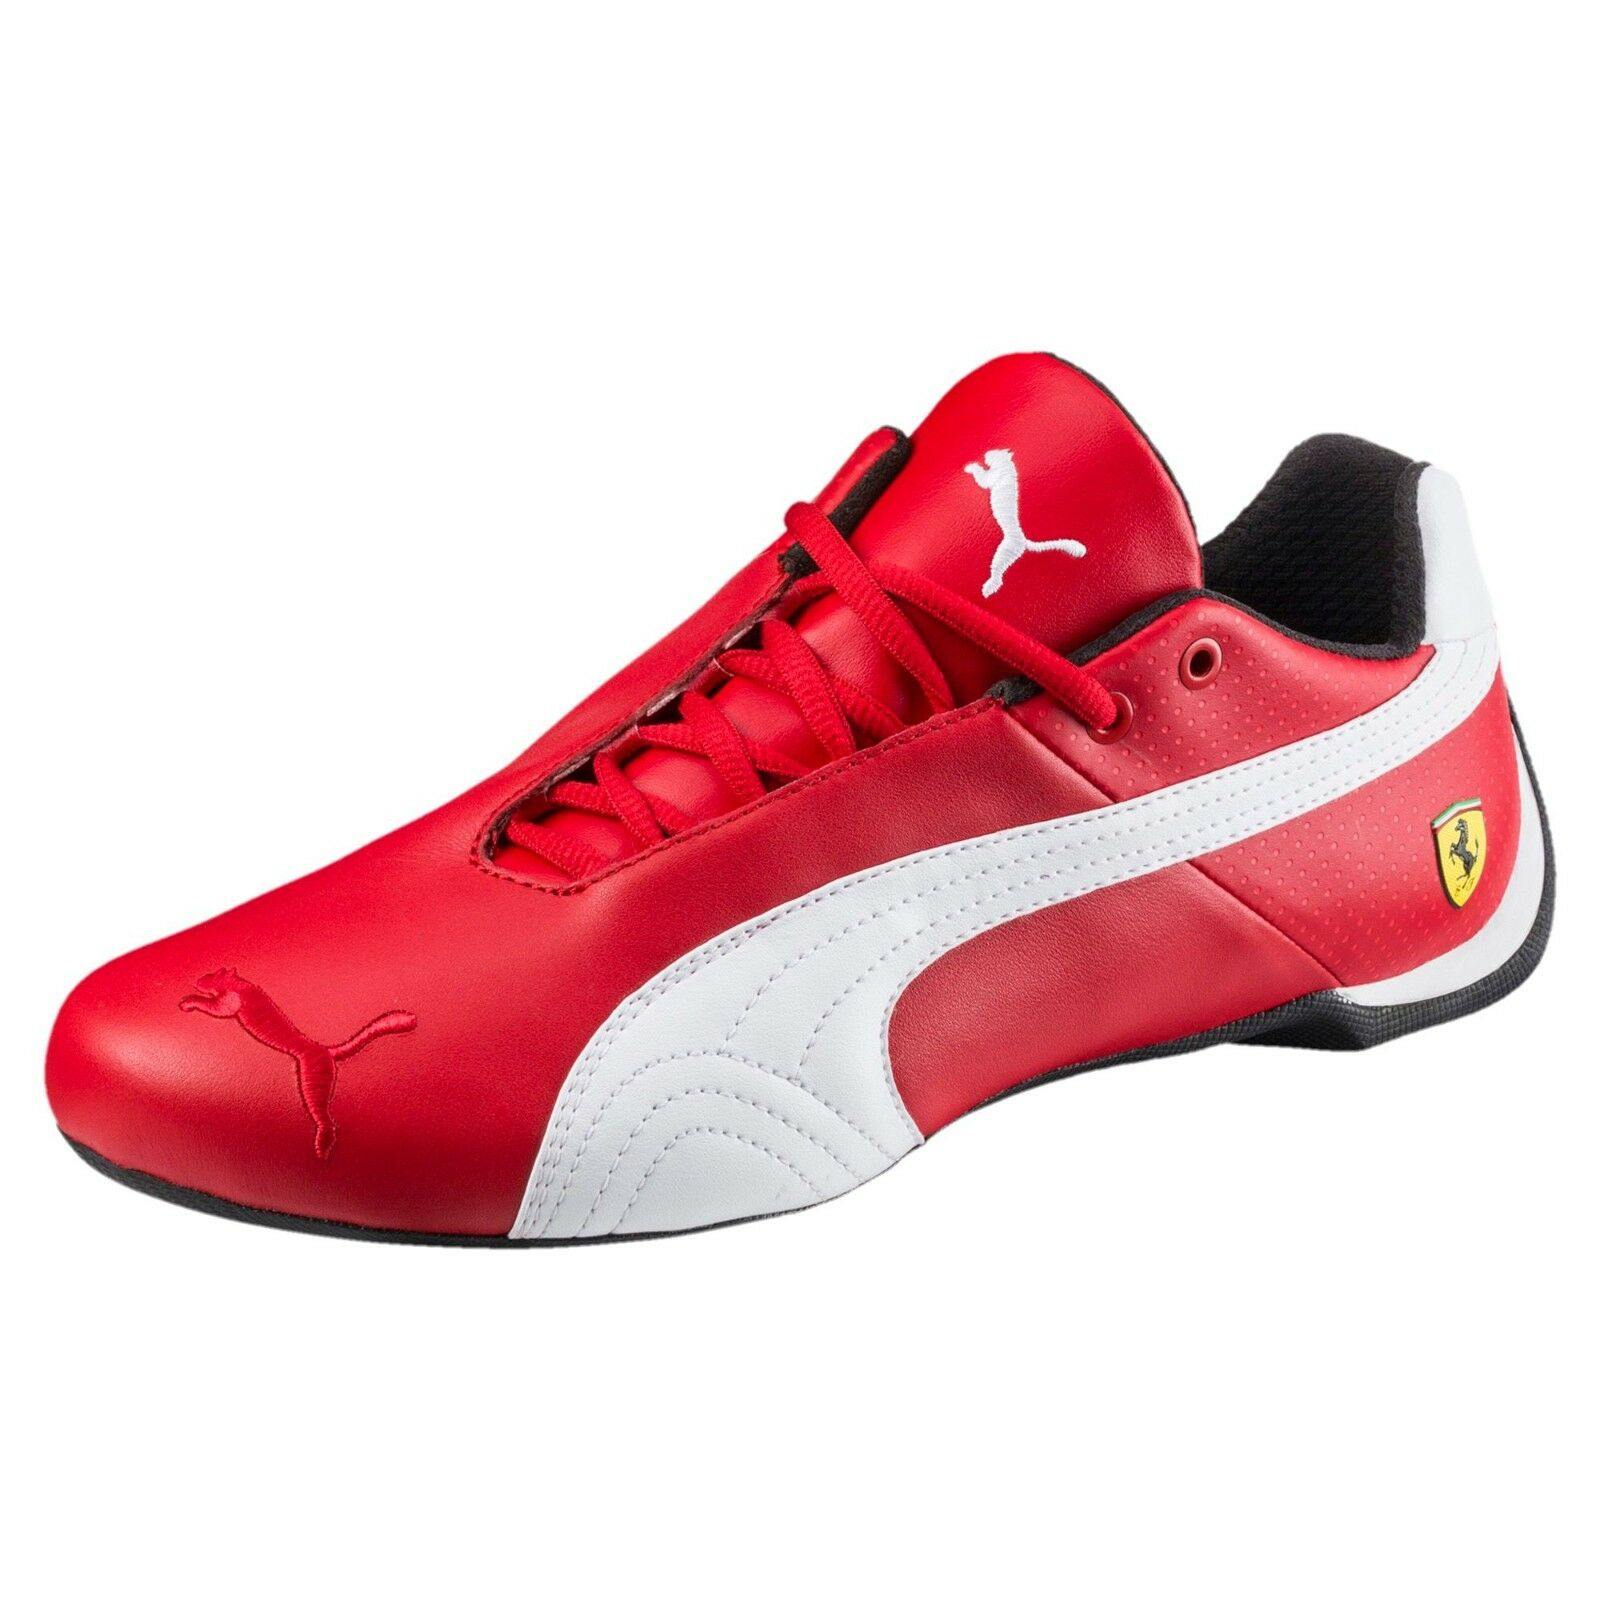 PUMA Ferrari  Future CAT OG  Men's Training Shoes